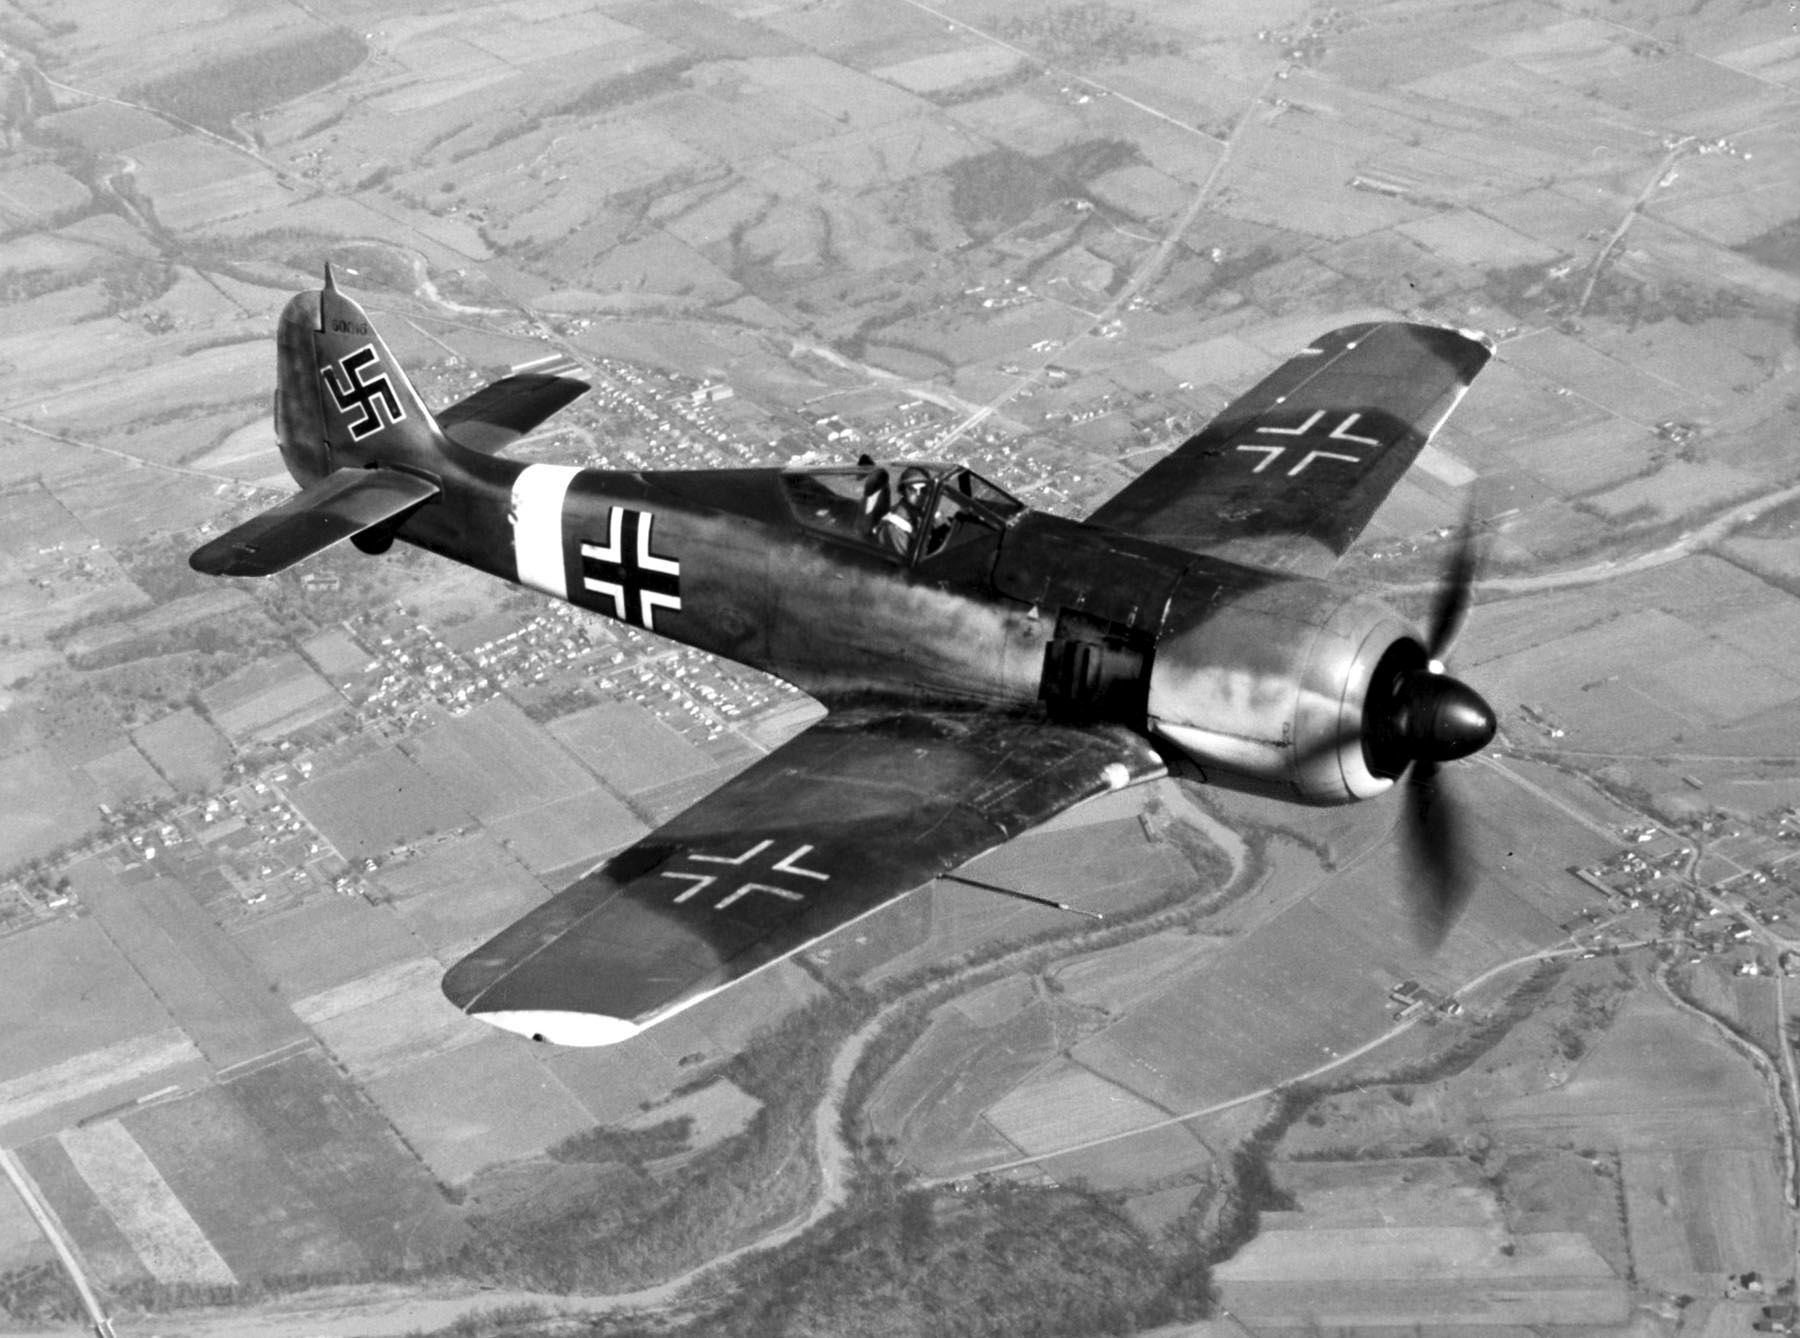 german blitzkrieg aircraft - photo #16